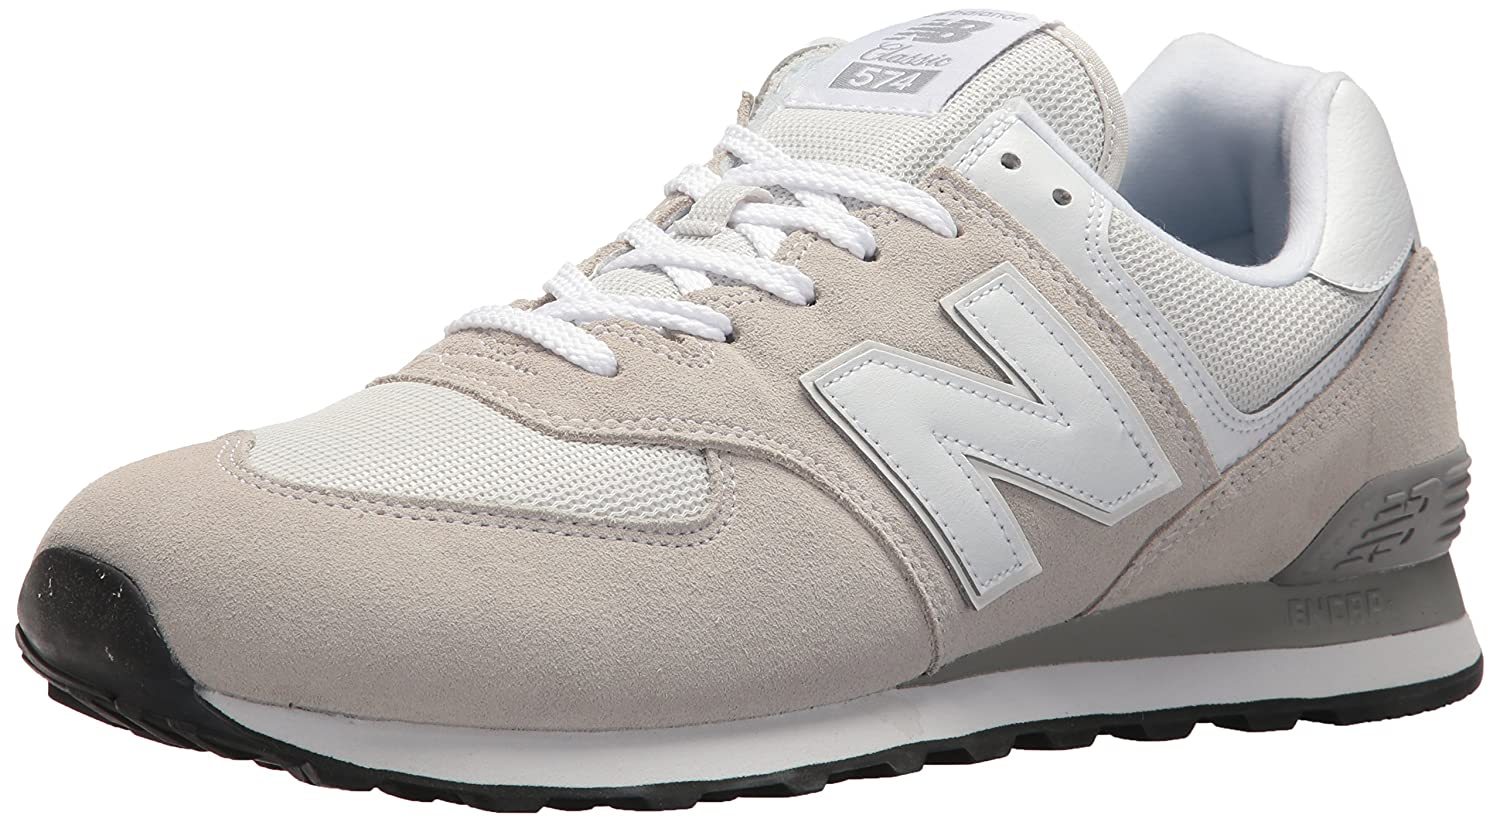 New Balance Ml574, Cloud) Baskets Homme 37.5 EU|Multicolore (Nimbus Cloud) Ml574, 2547f9